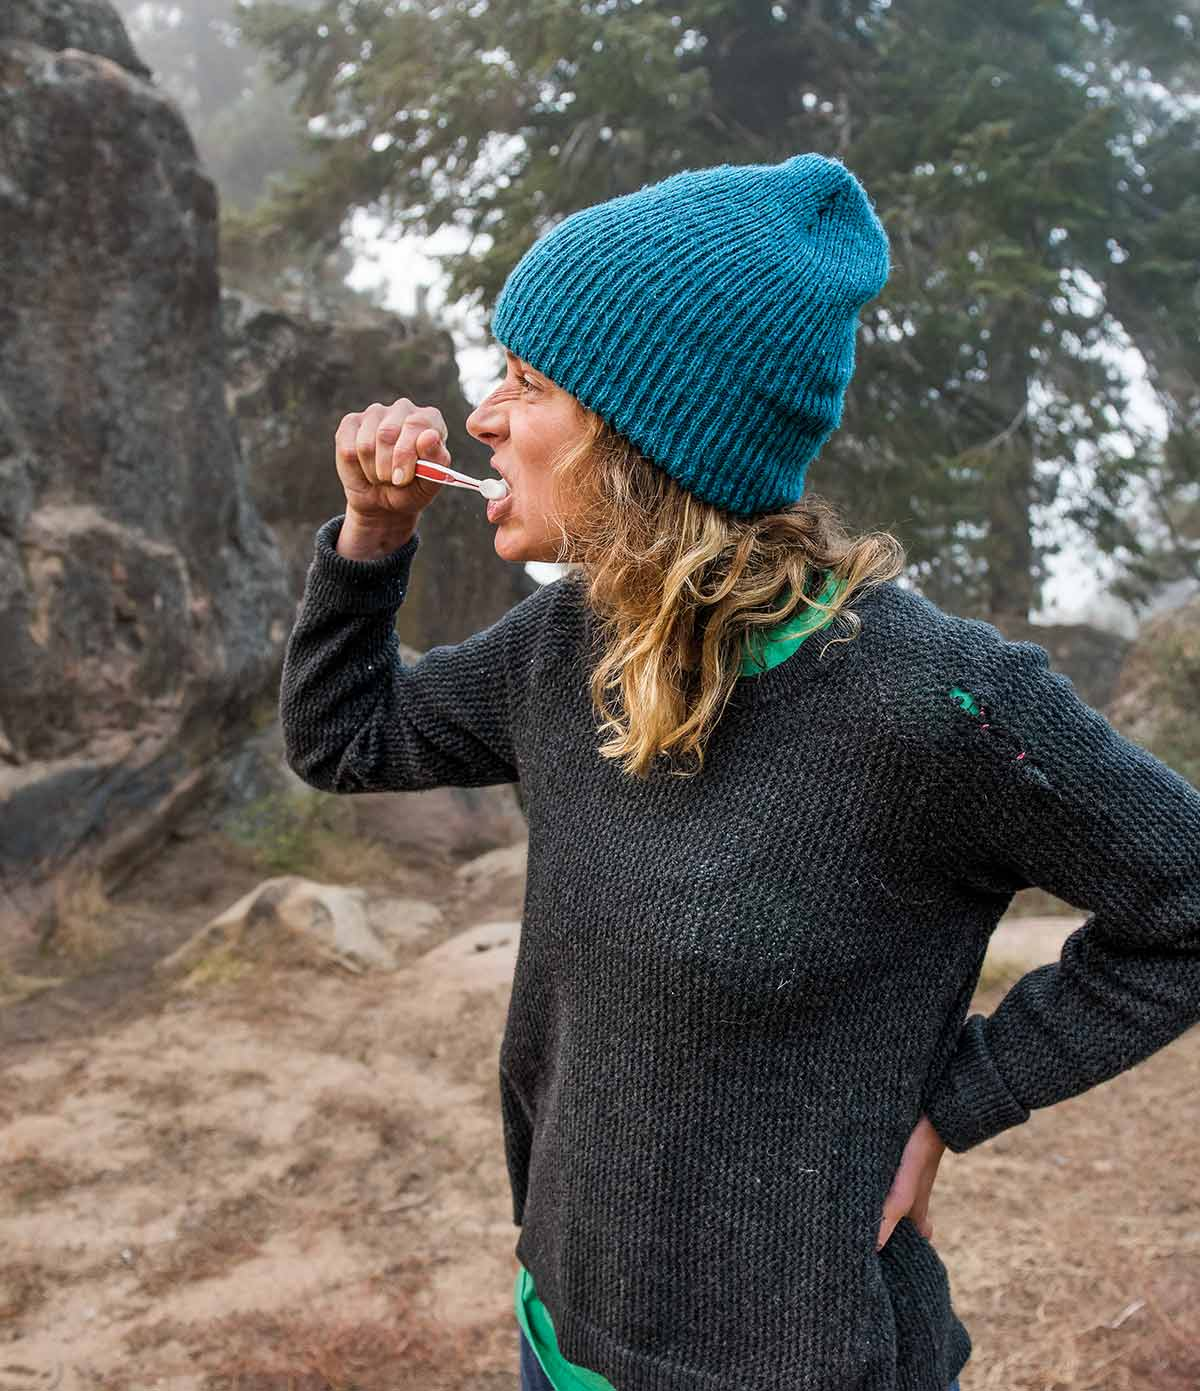 d08567a0 Patagonia: Discover recycled cashmere made from factory scraps.   Milled